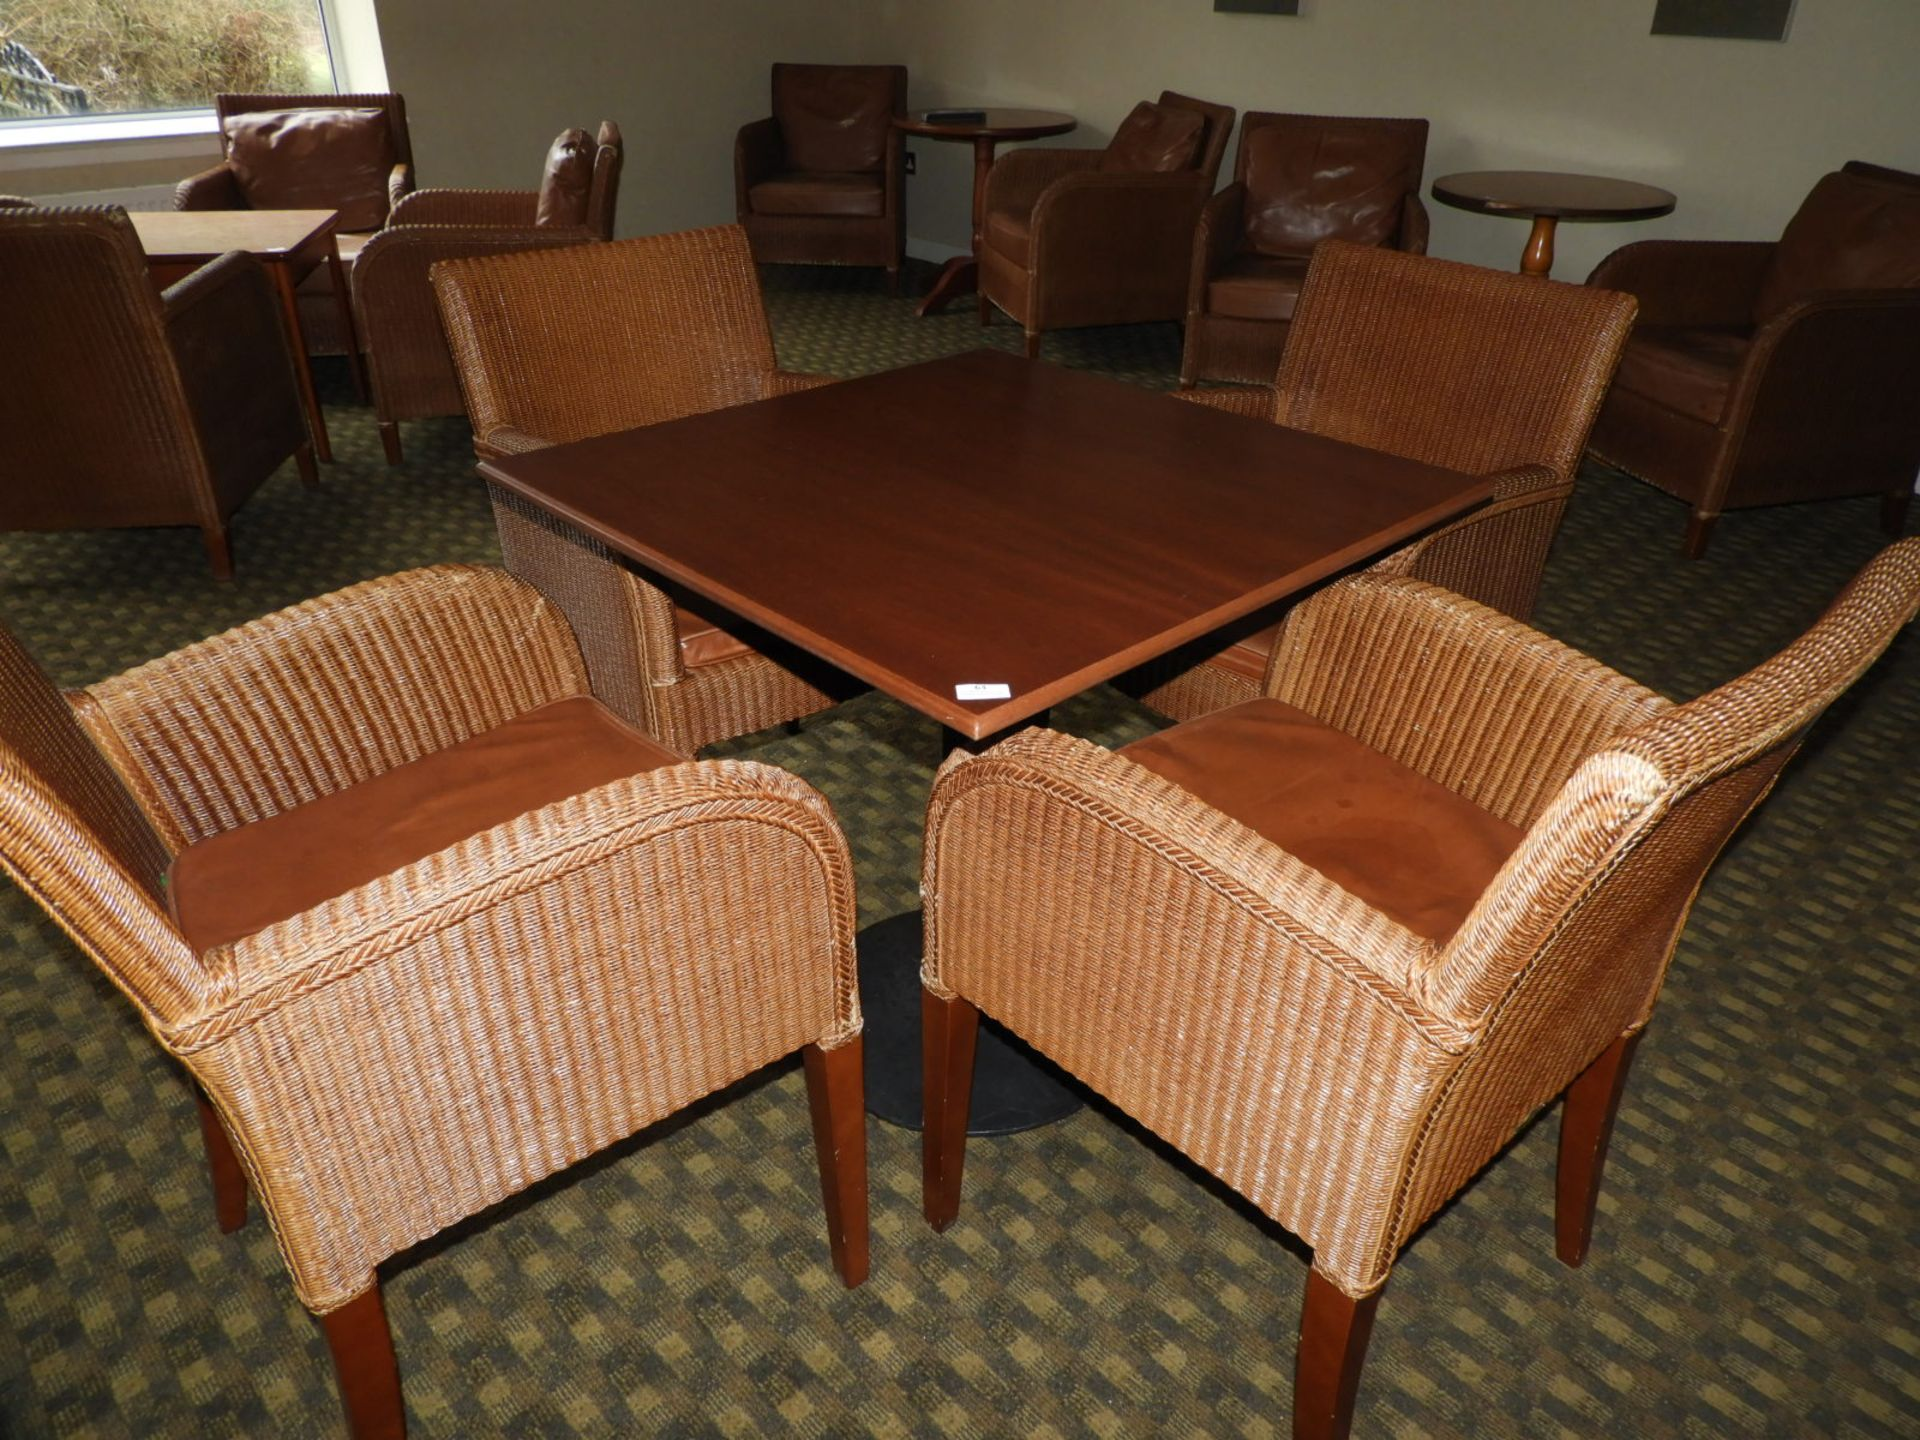 Lot 63 - *Set of Four Rattan Dining Chairs with Faux Leathe